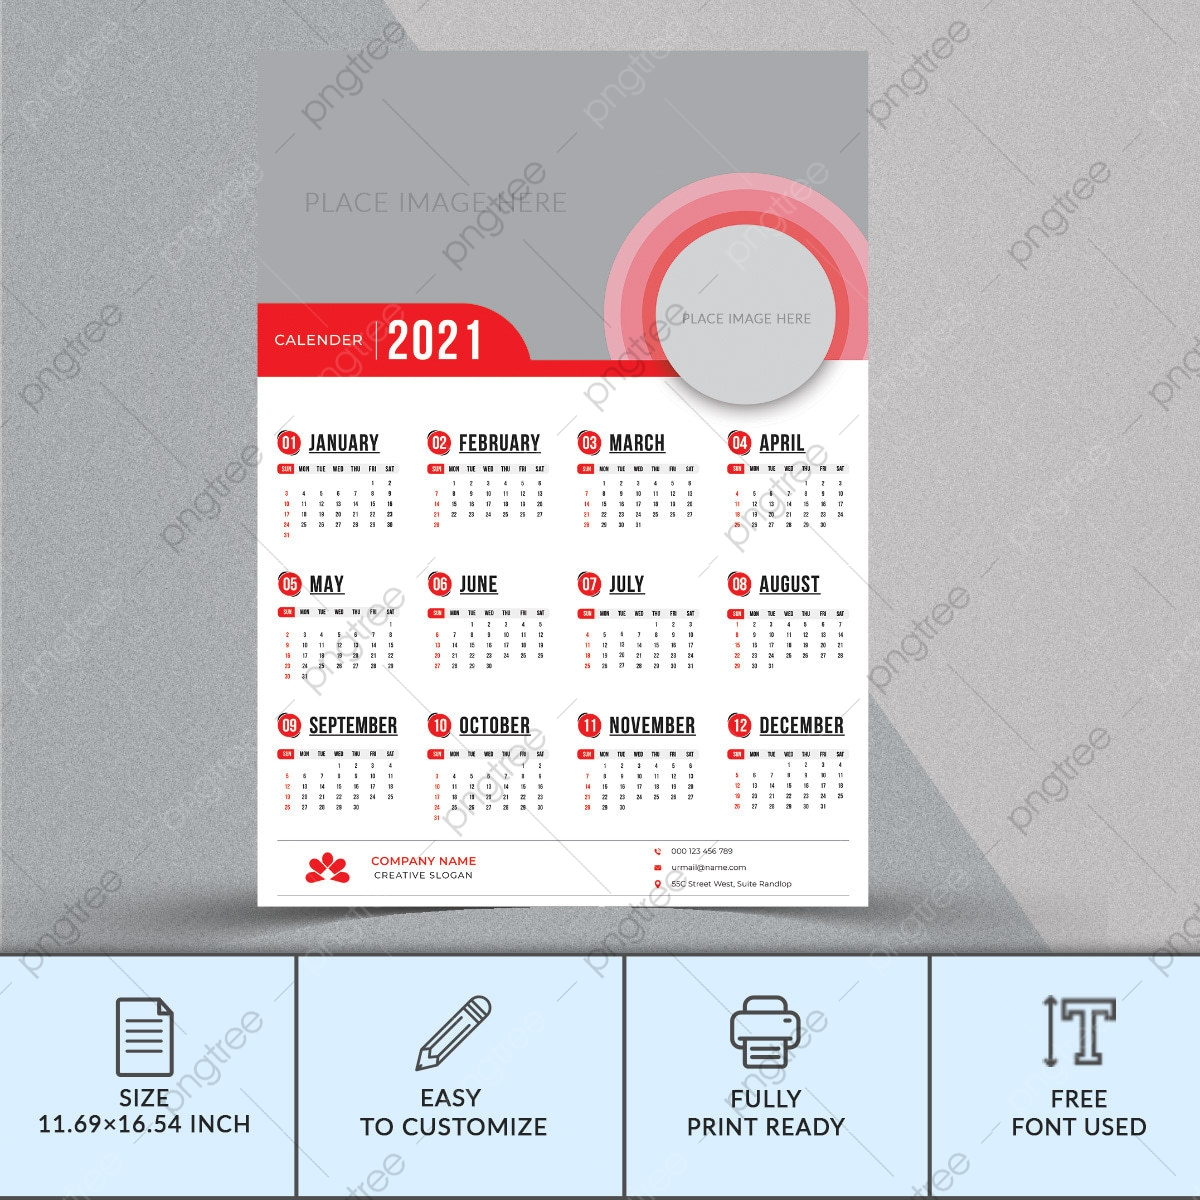 pngtree 2021 wall calendar template design png image